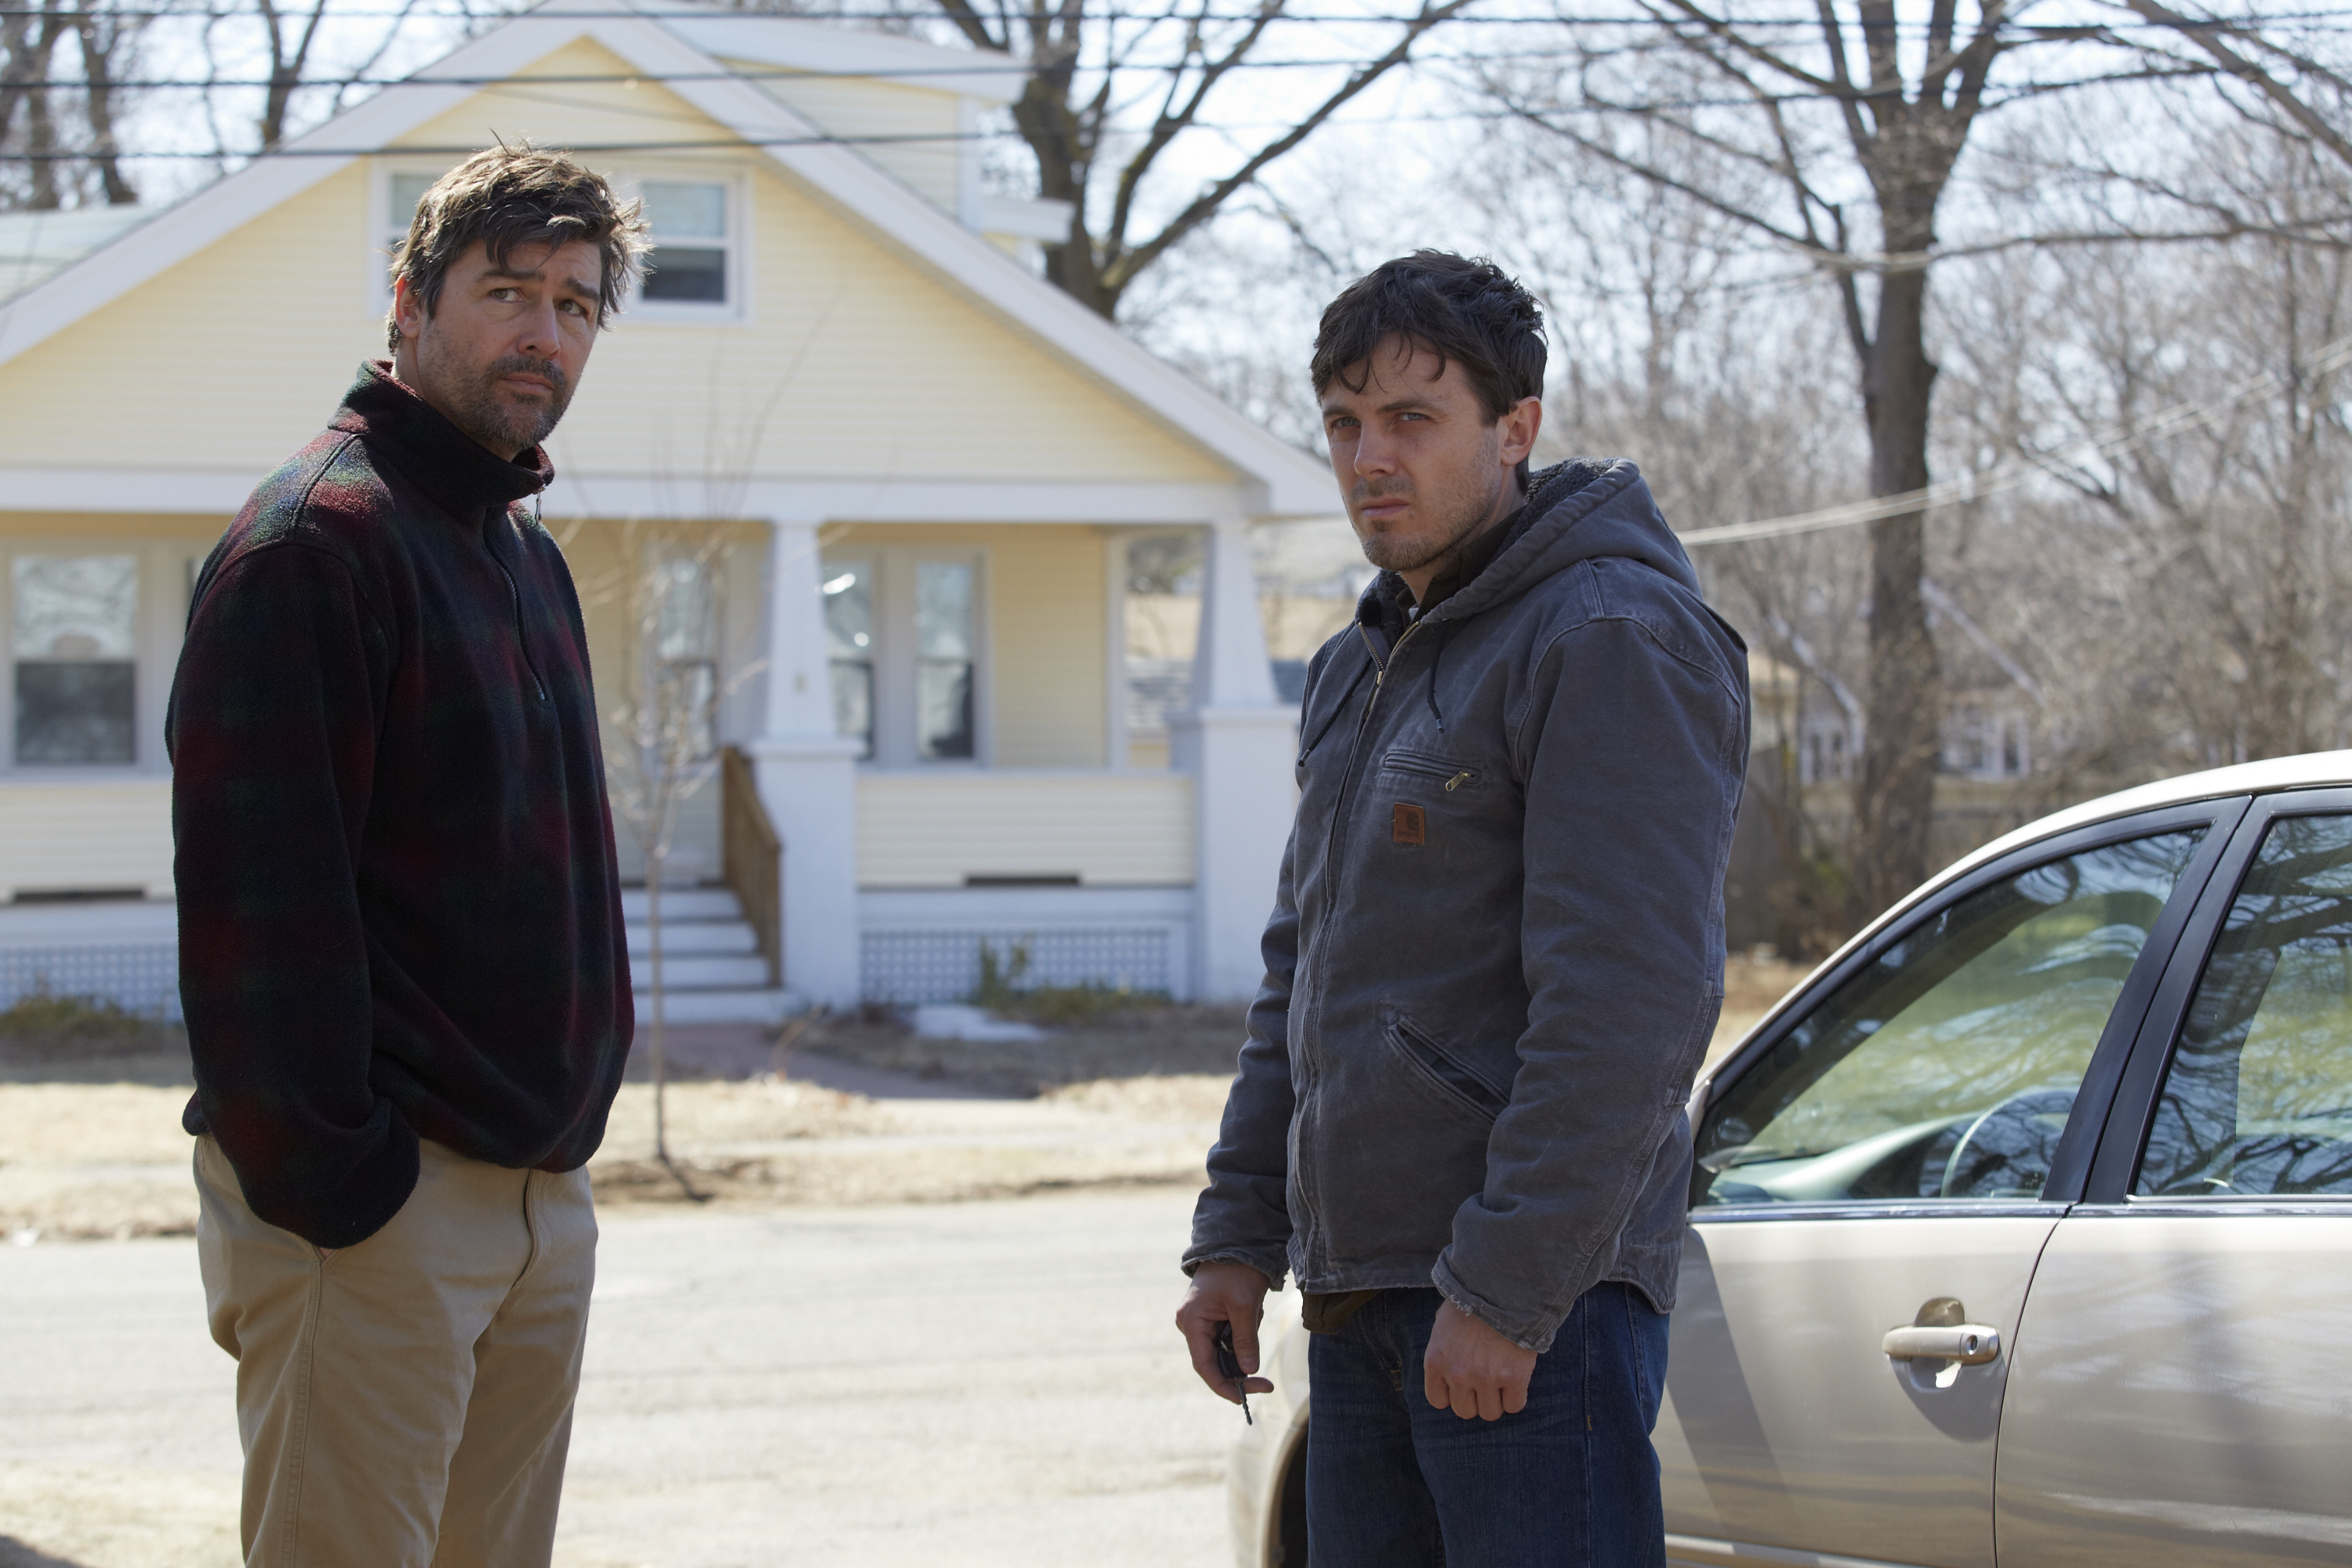 kyle-chandler-casey-affleck-credit_-claire-folger-courtesy-of-amazon-studios-and-roadside-attractions14672433601